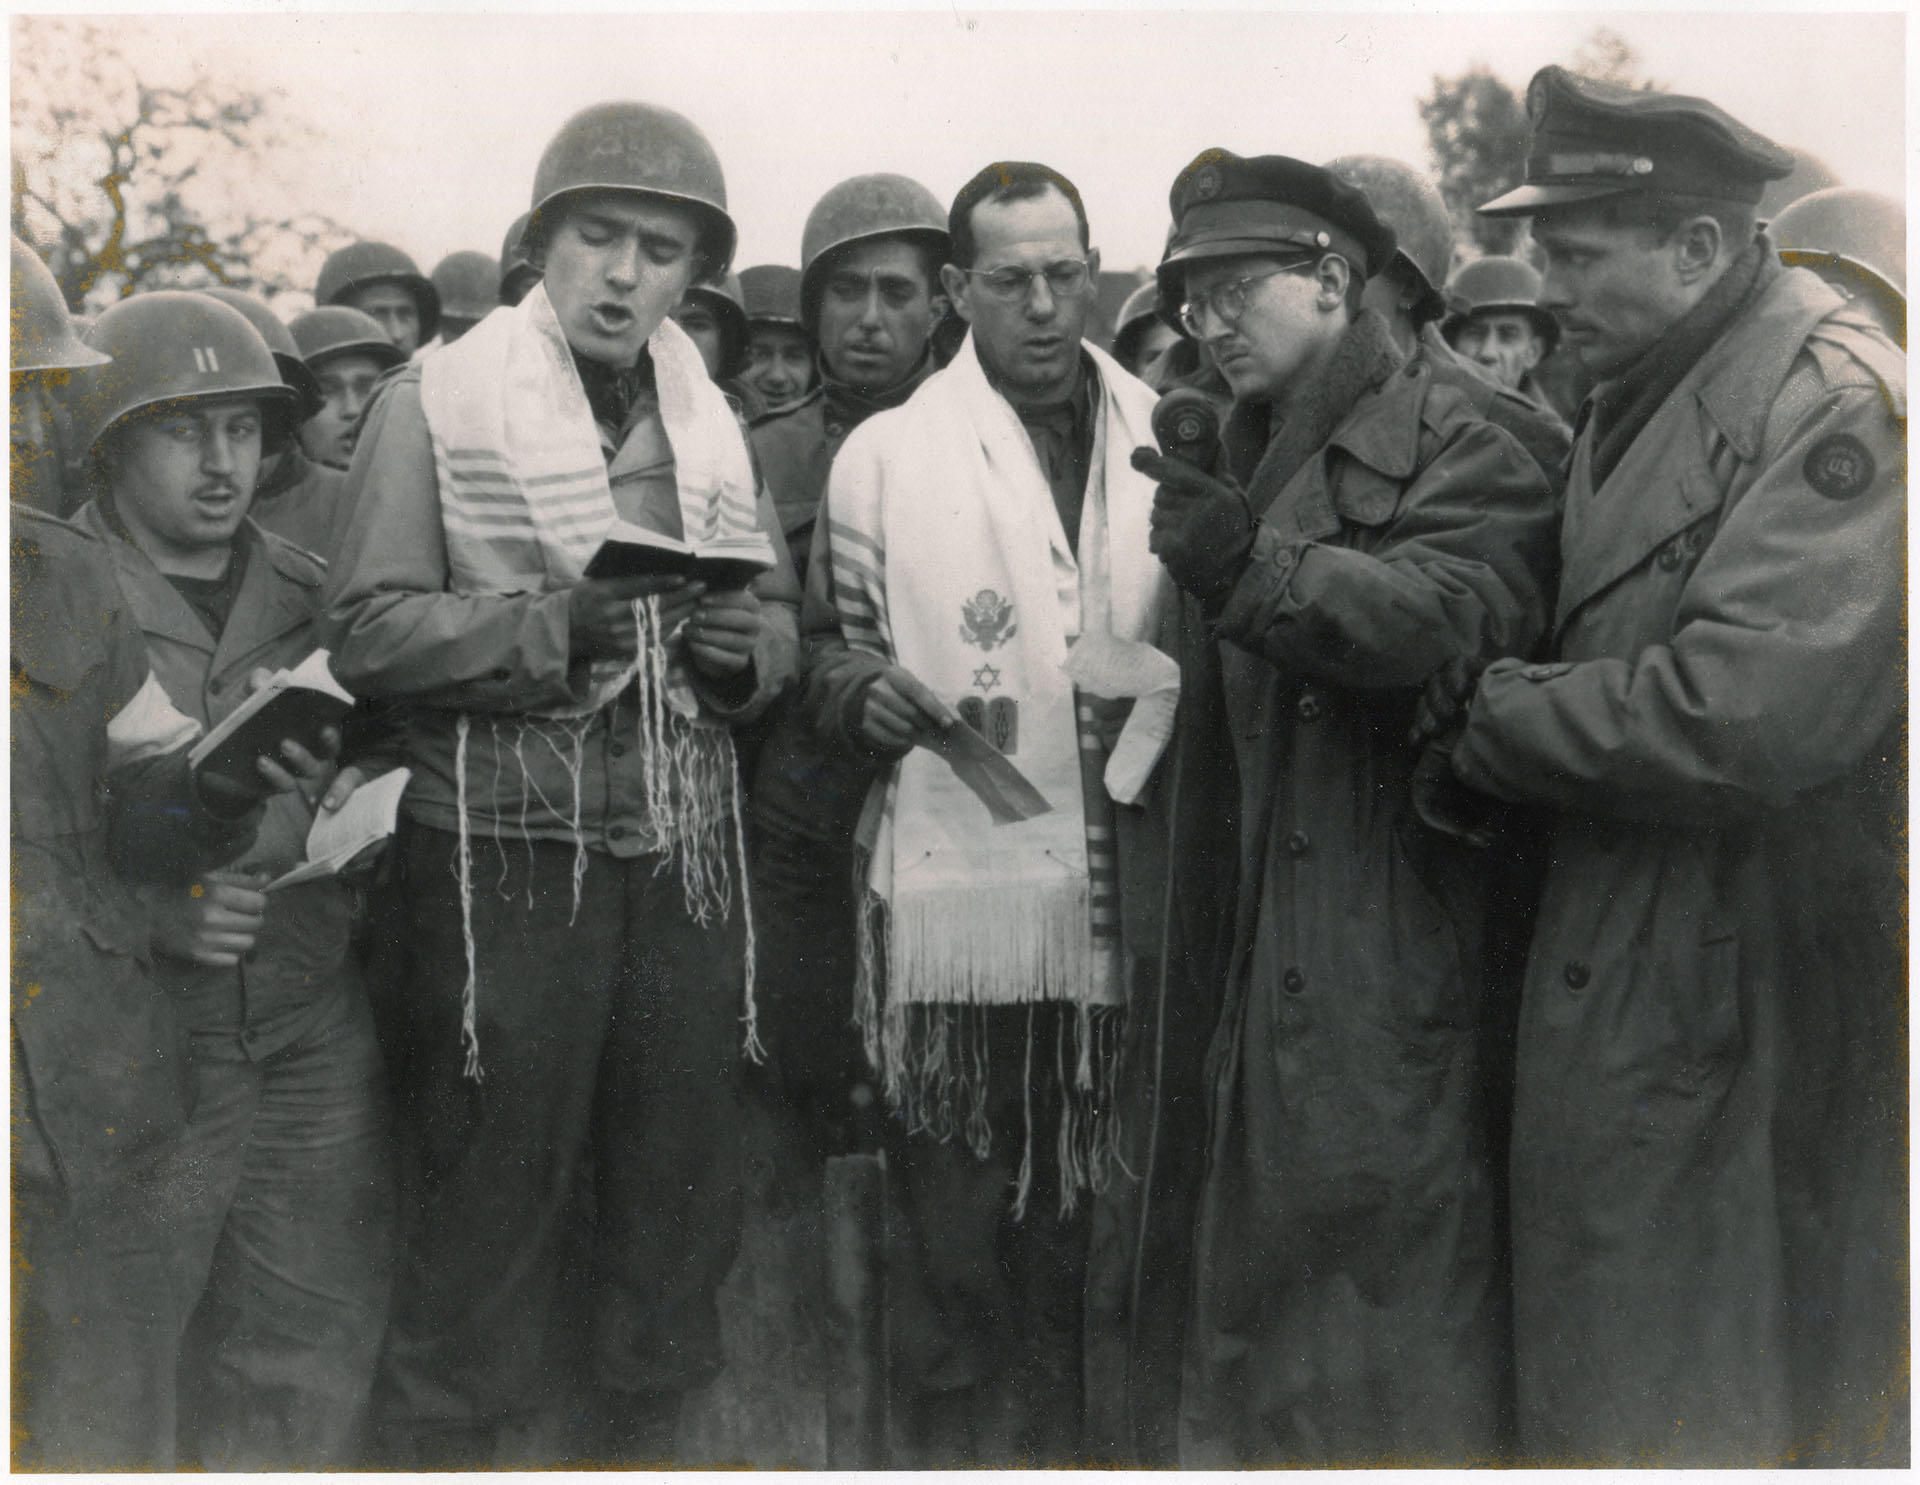 Max Fuchs and Rabbi Chaplain Sidney Lefkowitz. He is singing in Aachen, Germany during the first Jewish service to be held on German soil since the rise of Hitler